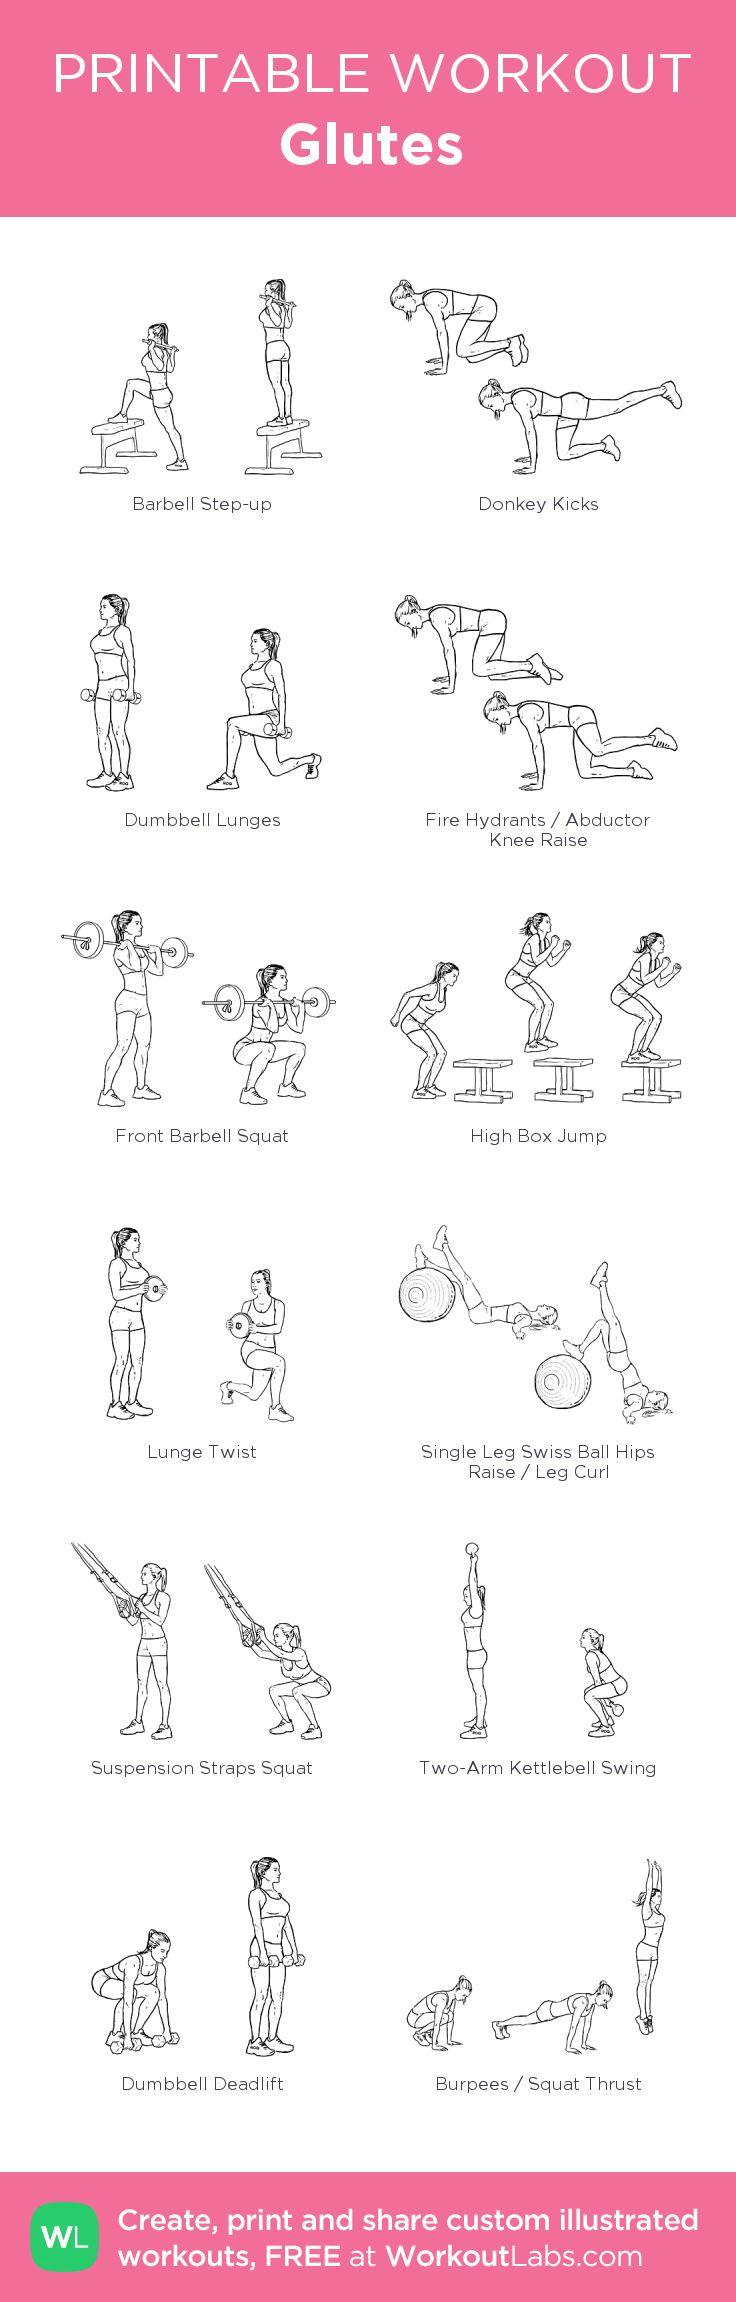 Glutes: my visual workout created at WorkoutLabs.com • Click through to customize and download as a FREE PDF! #customworkout